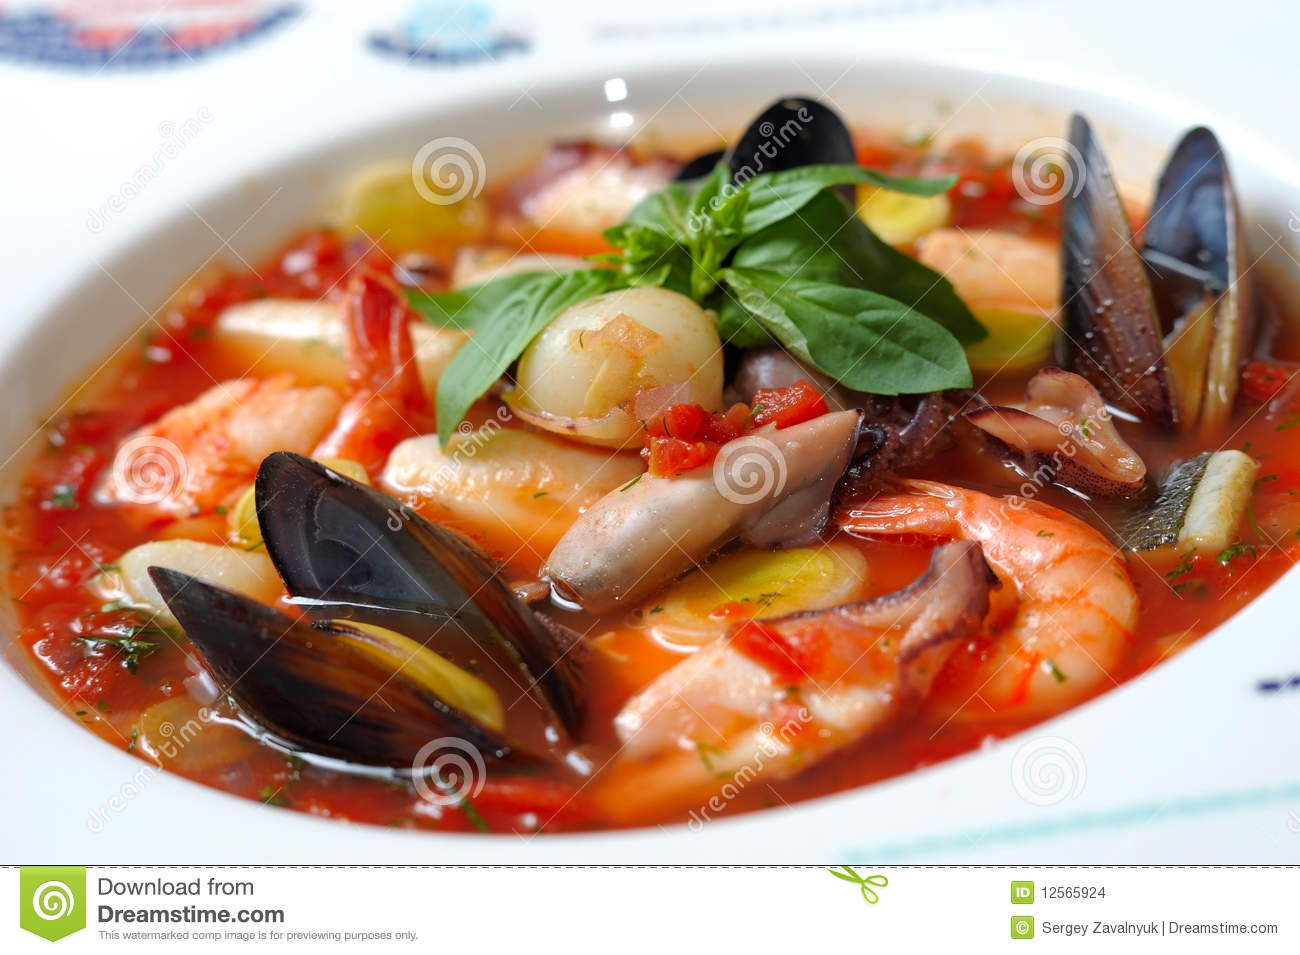 Tomato Soup With Seafood And Fish Stock Images - Image ...   1300 x 955 jpeg 149kB